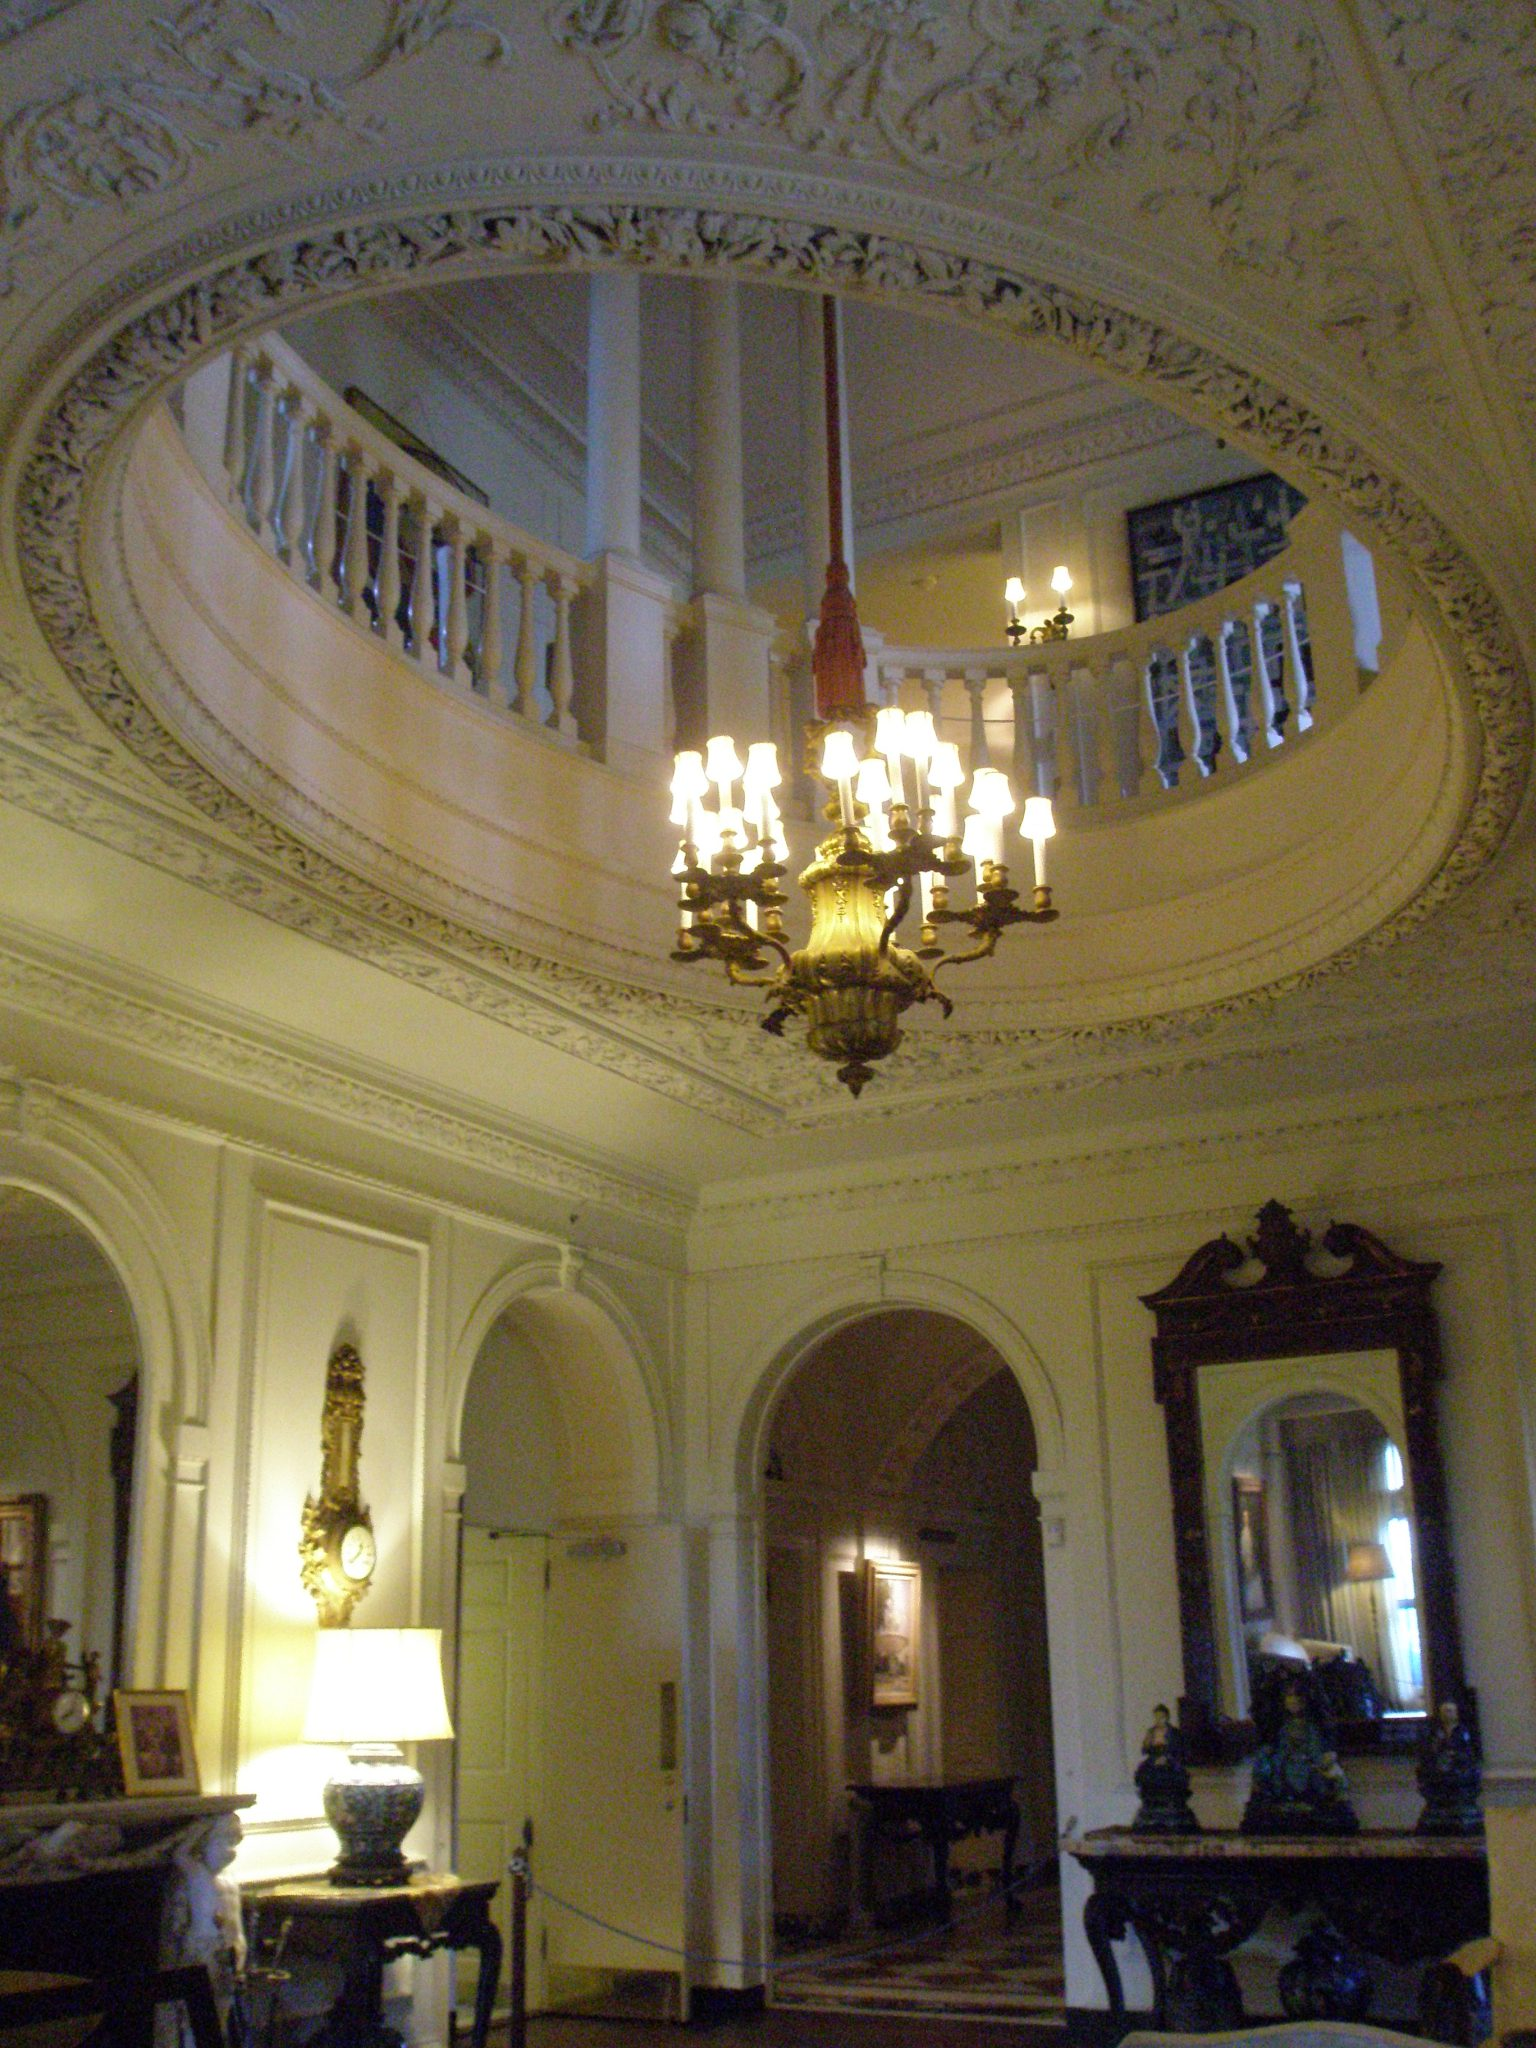 The double-height Music Room